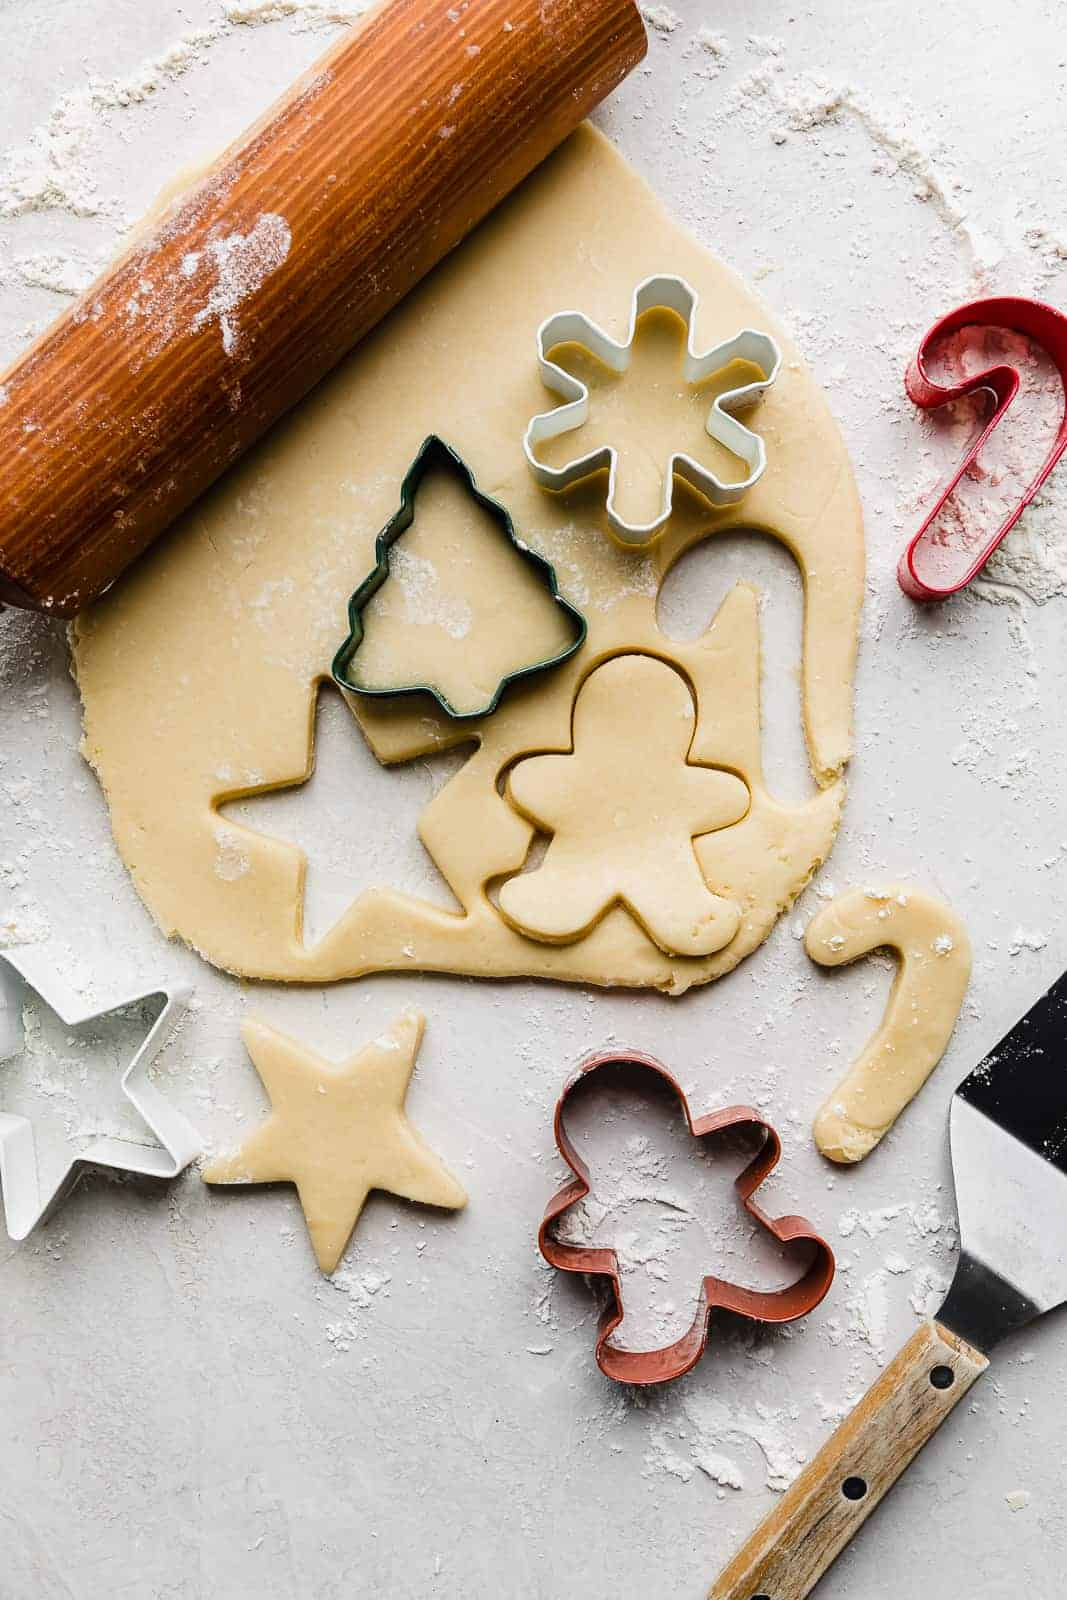 Rolled out sugar cookie dough with Christmas cookie cutters on top of the dough.